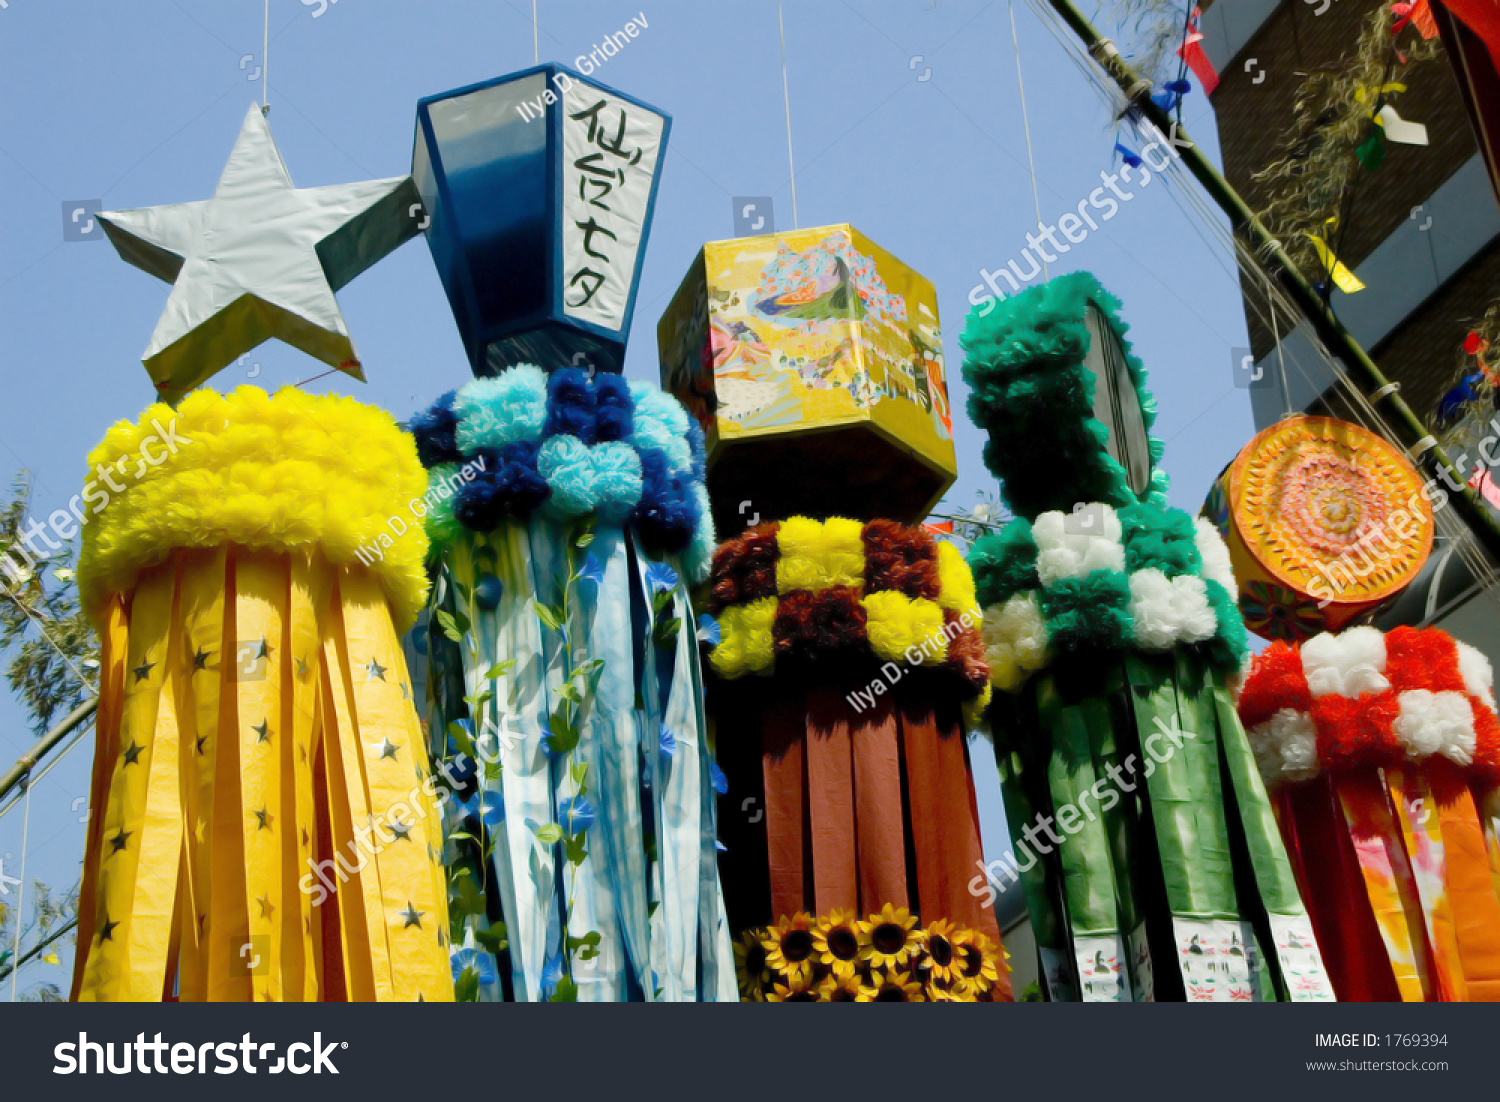 japanese festival essays Hinamatsuri, or doll's festival, is a japanese holiday held annually on march 3rd this is a day to pray for young girls' growth and happiness.